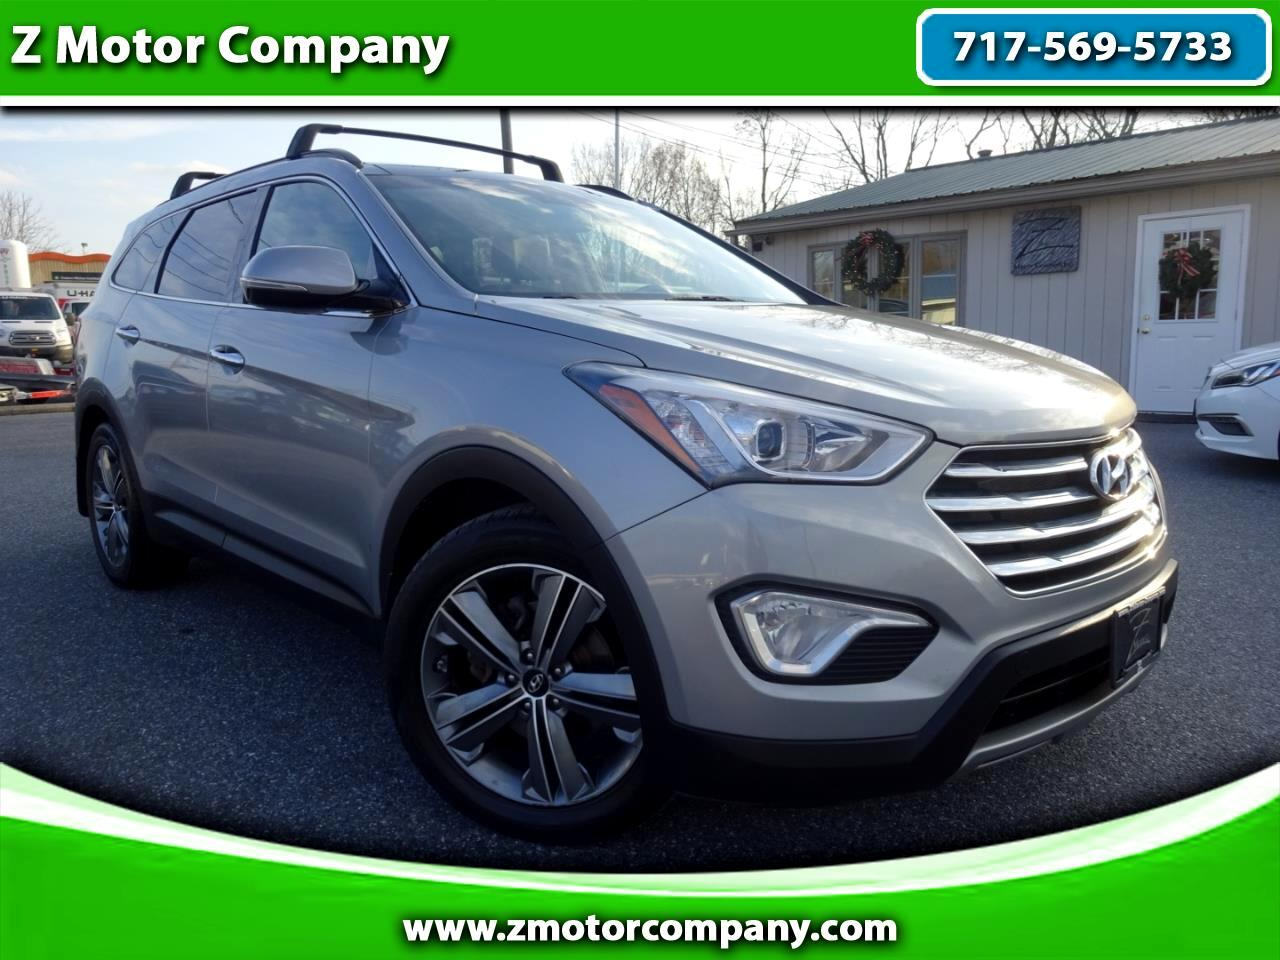 2015 Hyundai Santa Fe Limited w/Ultimate Package AWD